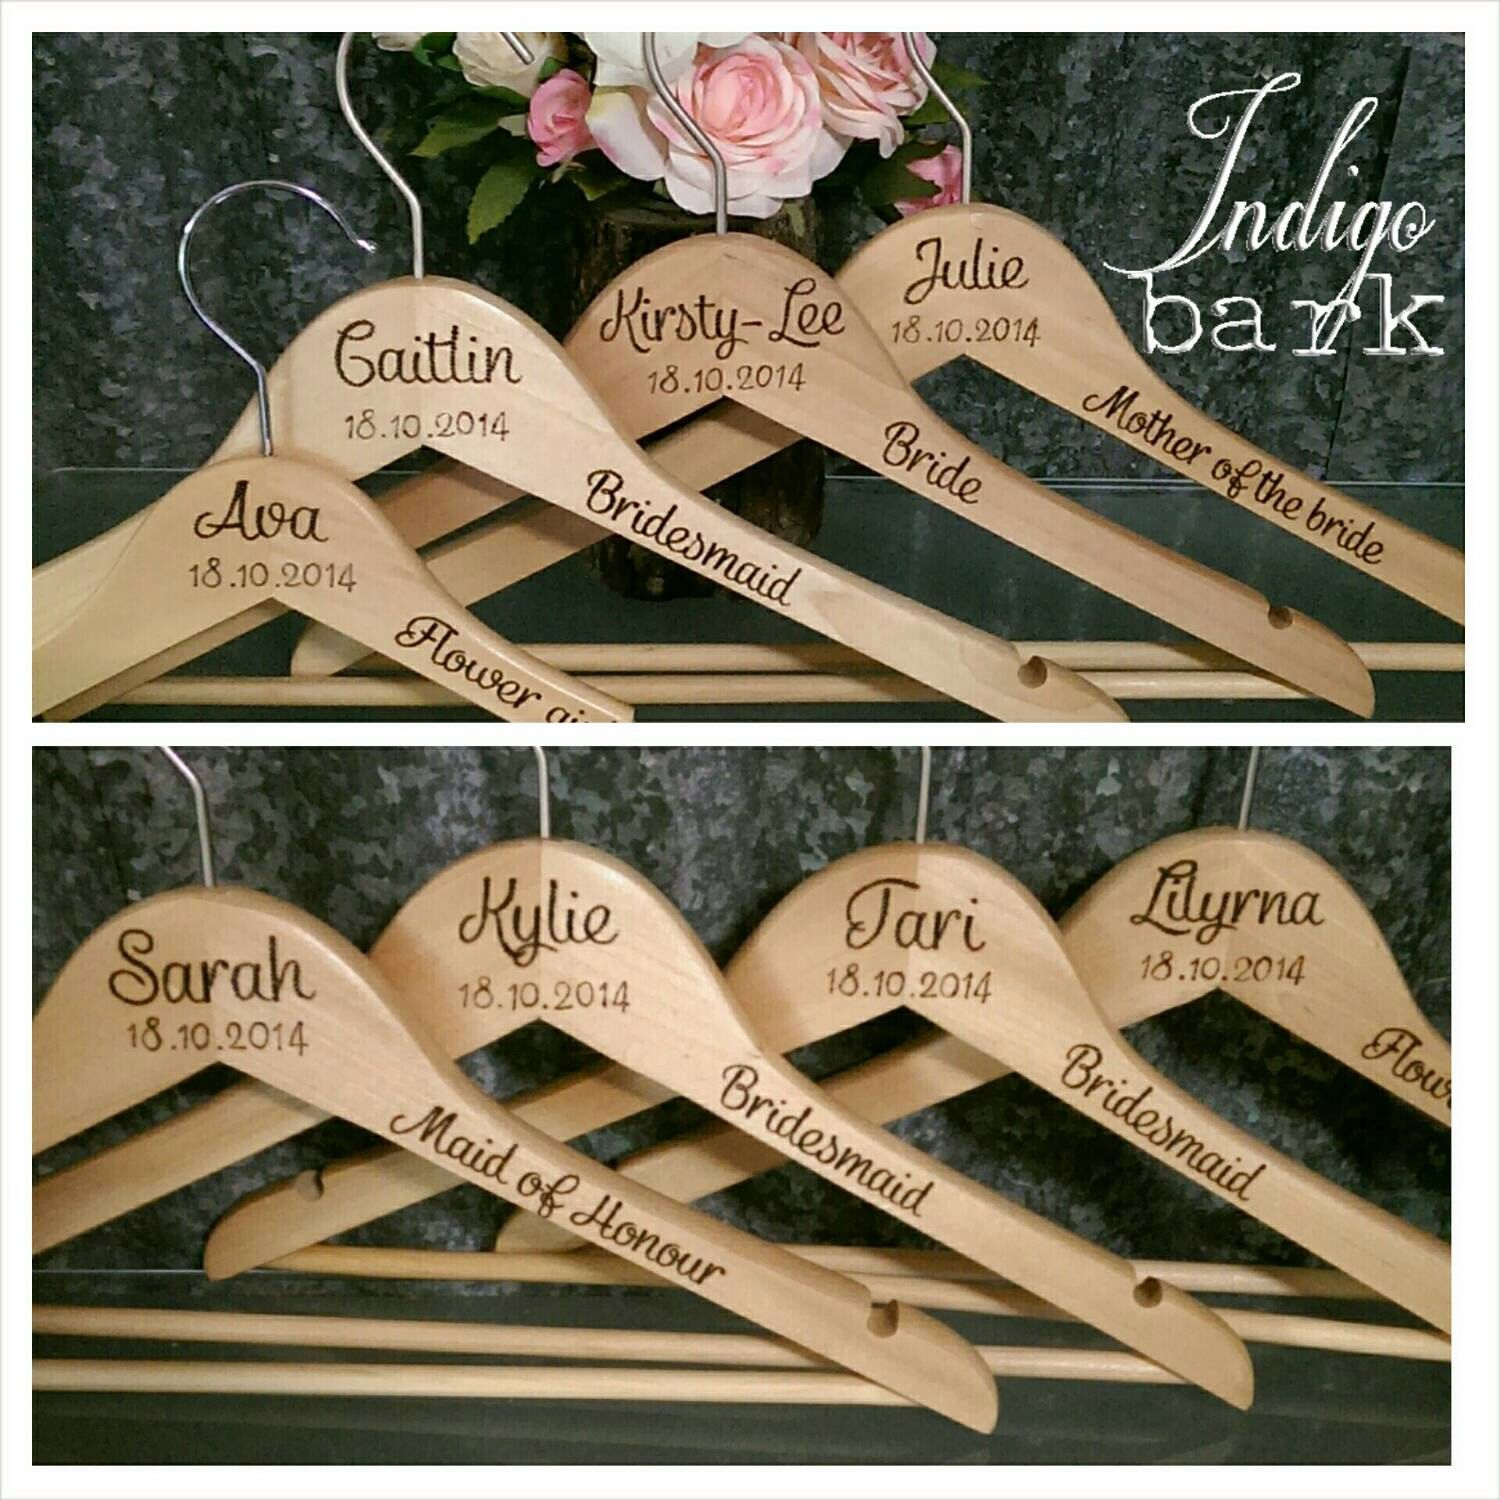 1c0c0a5e7d1f2 Personalised Wooden Coat Hangers by IndigoBark on Etsy https   www.etsy.